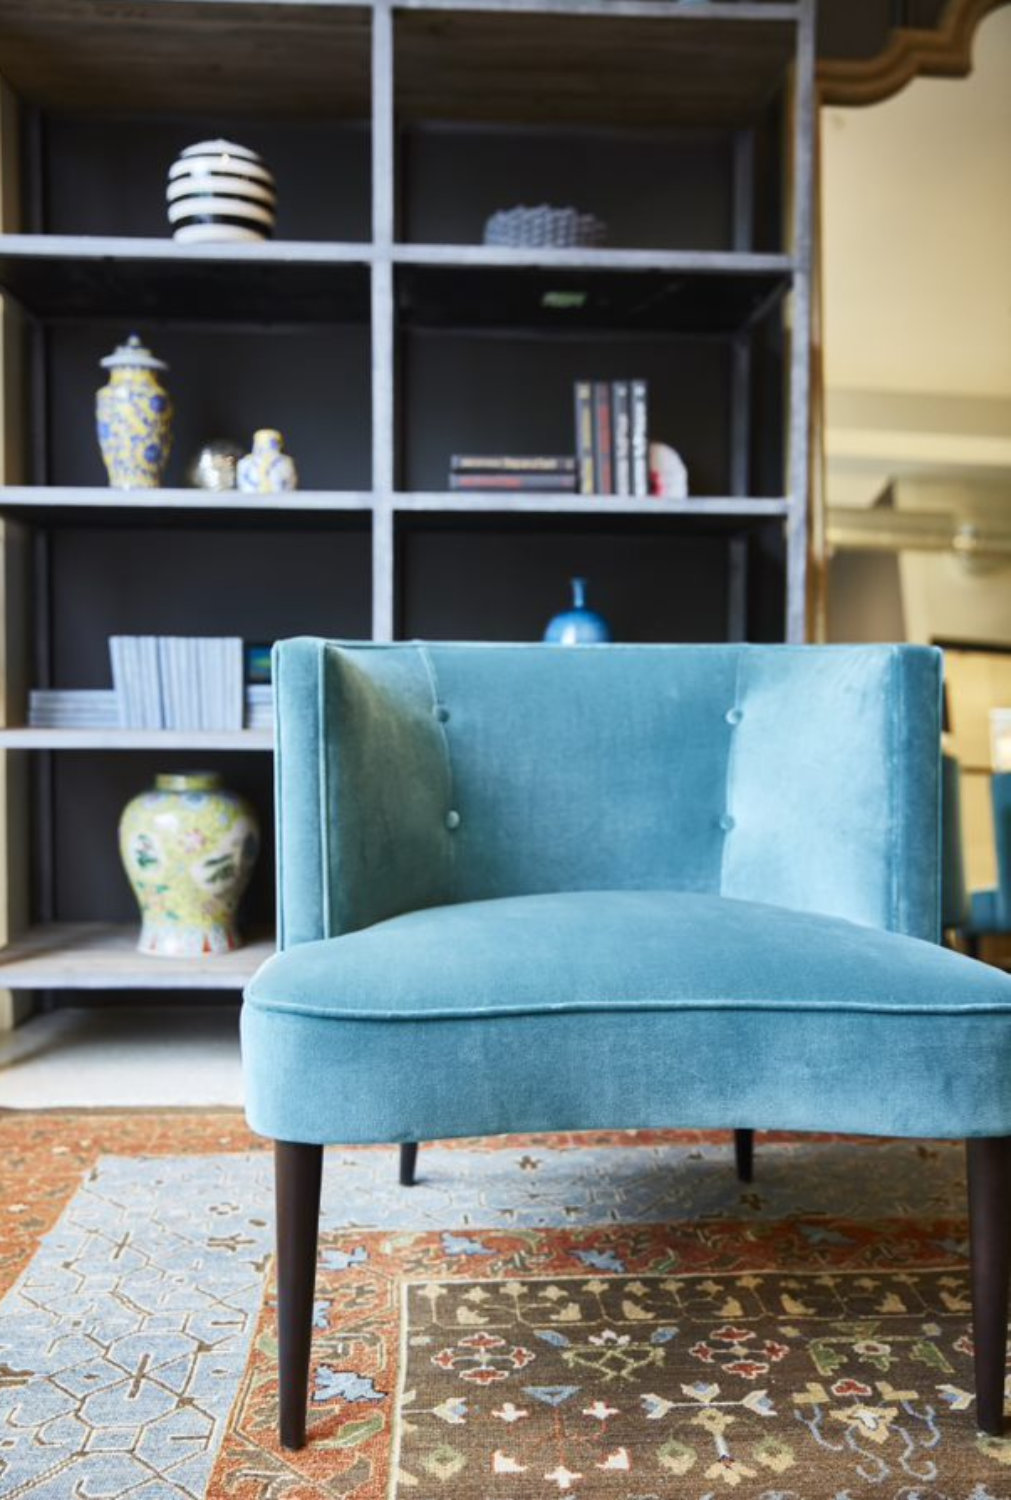 Midcentury ocean-blue chairs: a nod to the retro hotels that dot the Miami coastline.